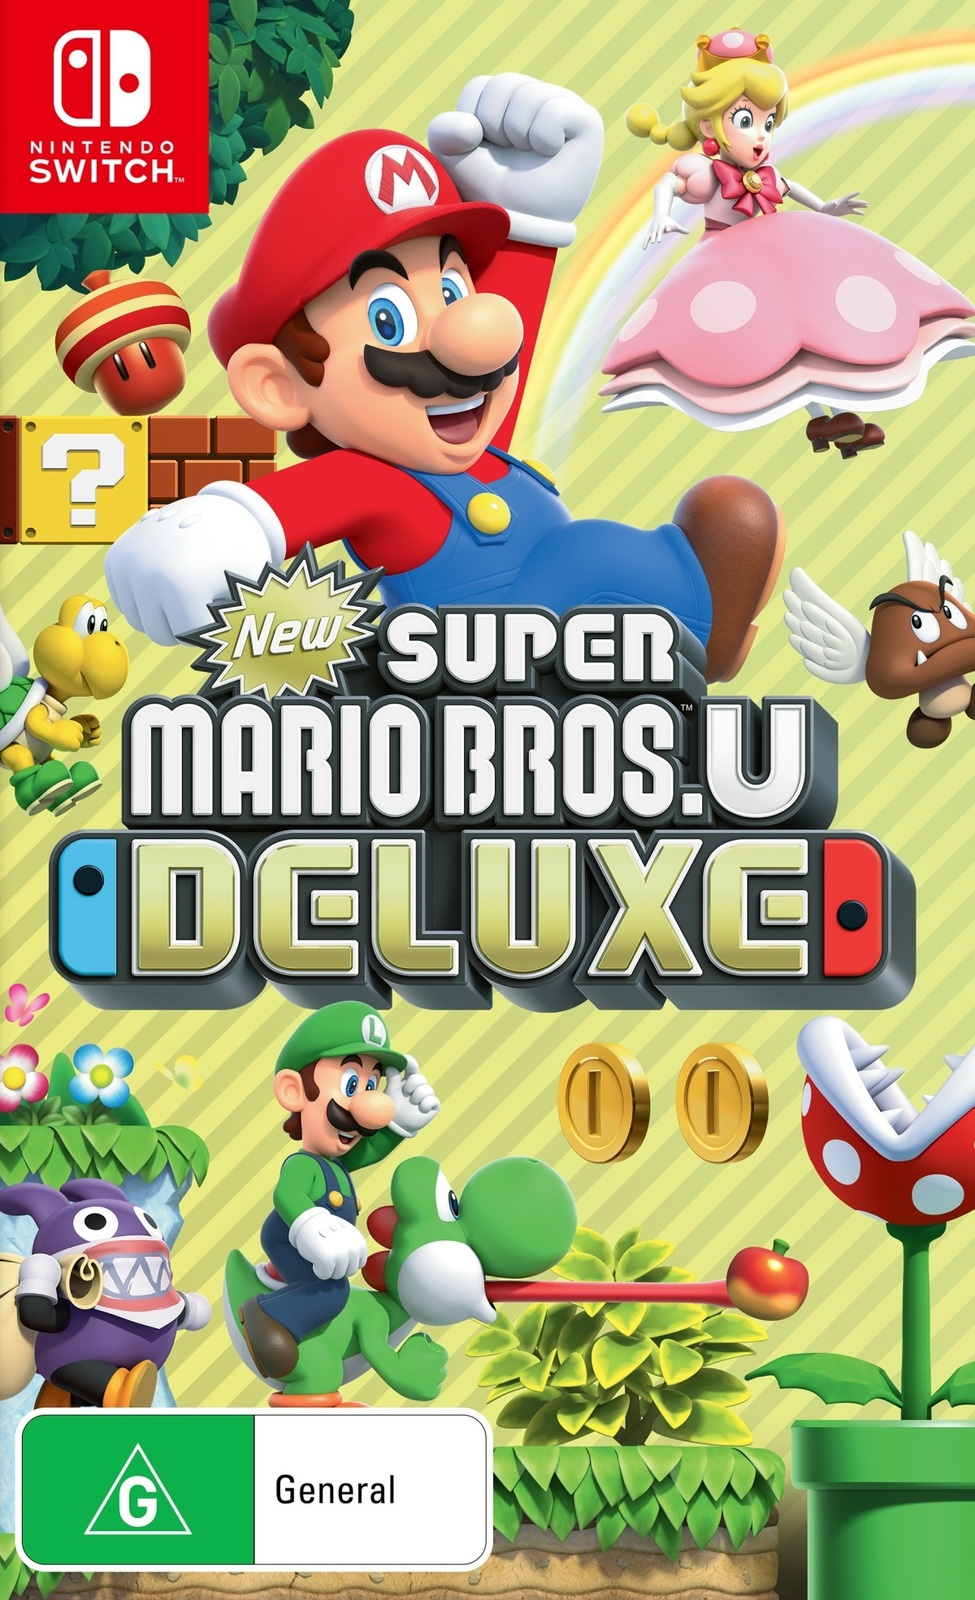 New Super Mario Bros. U Deluxe for Nintendo Switch image